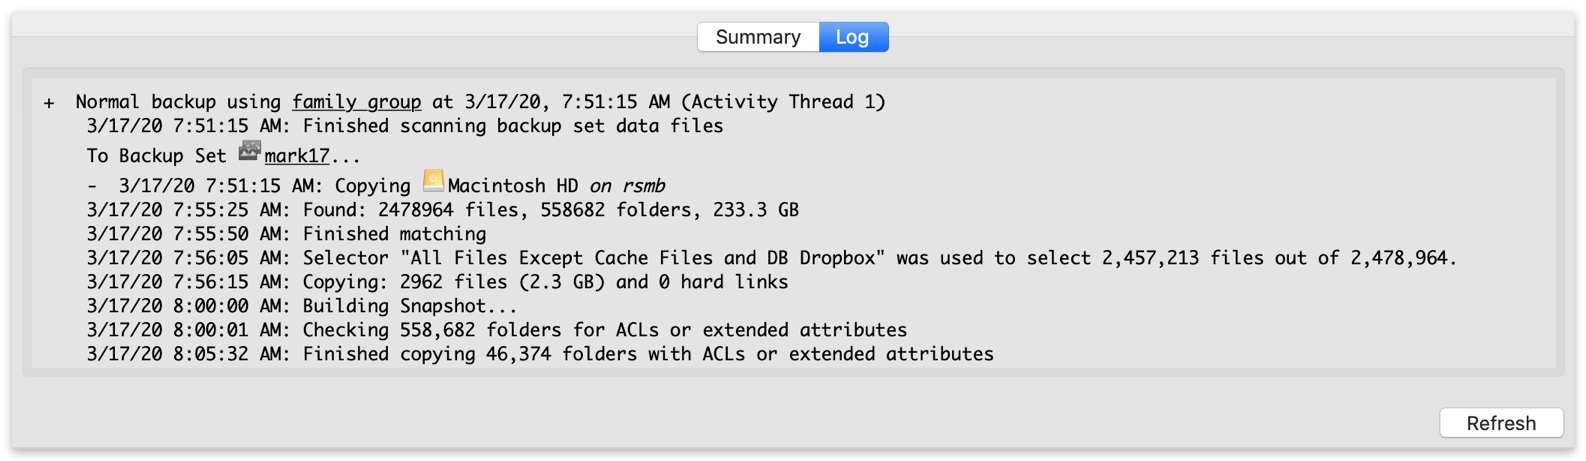 mac_operations_activities_log.png